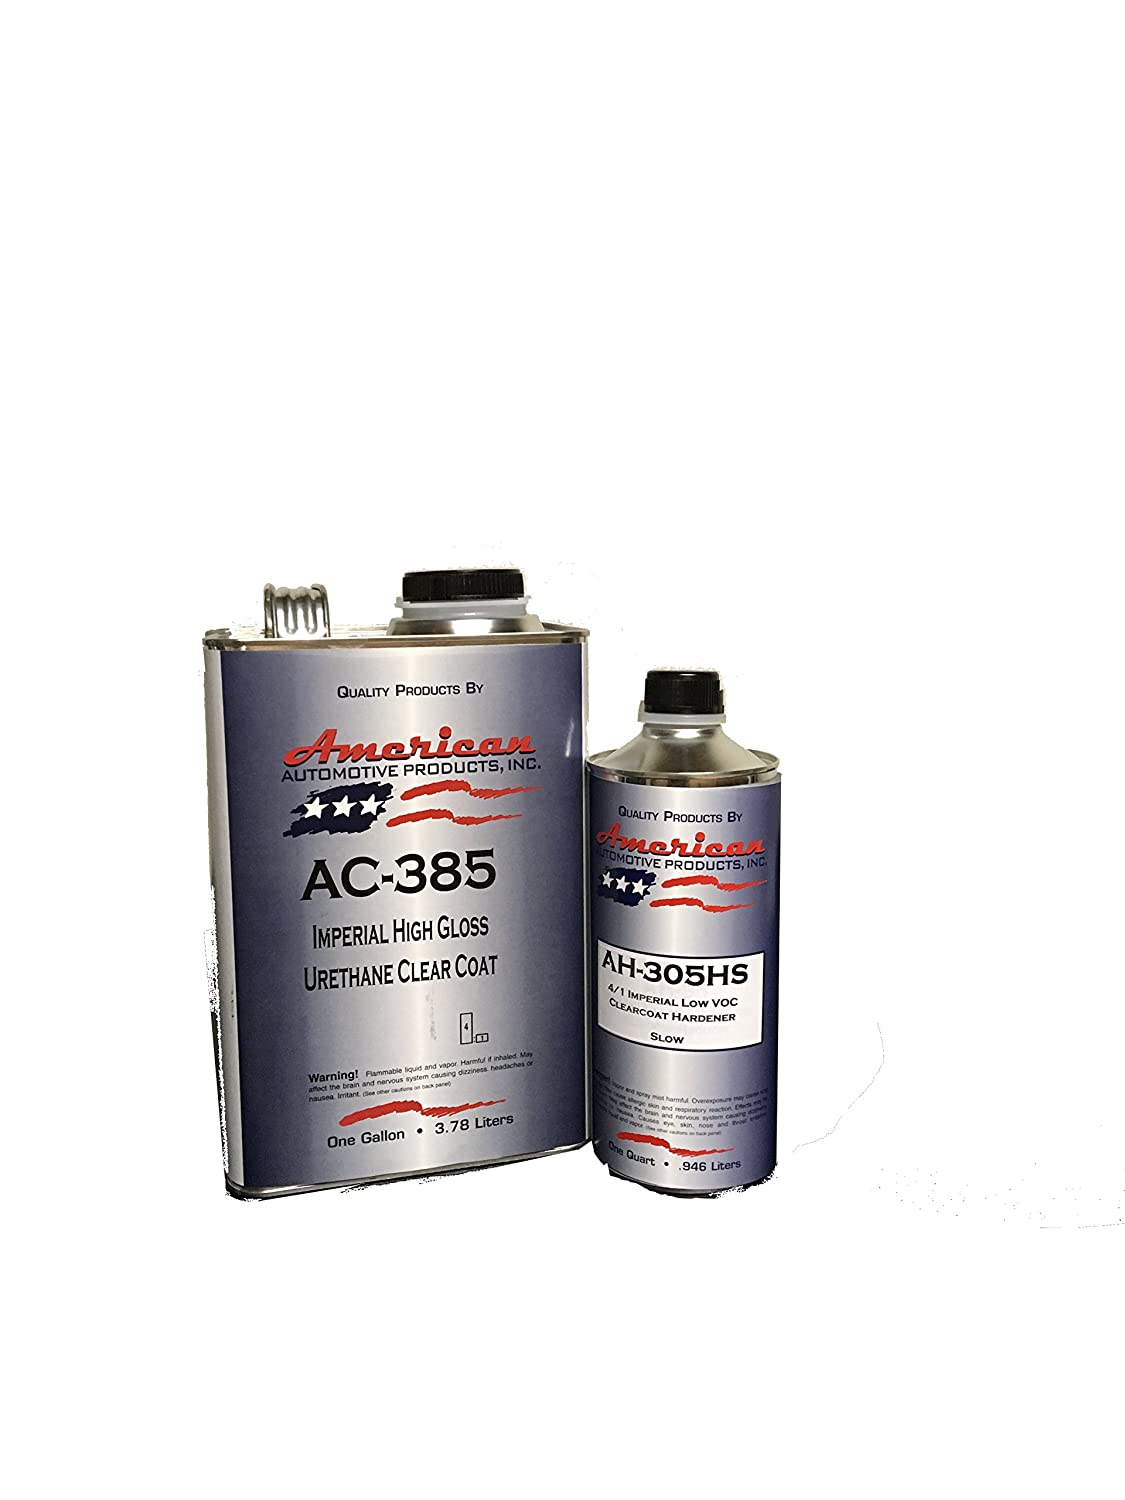 AC-385HS Automotive Clear Coat Gallon 2K Urethane Clearcoat Kit Slow Activator Auto Body Supply Warehouse